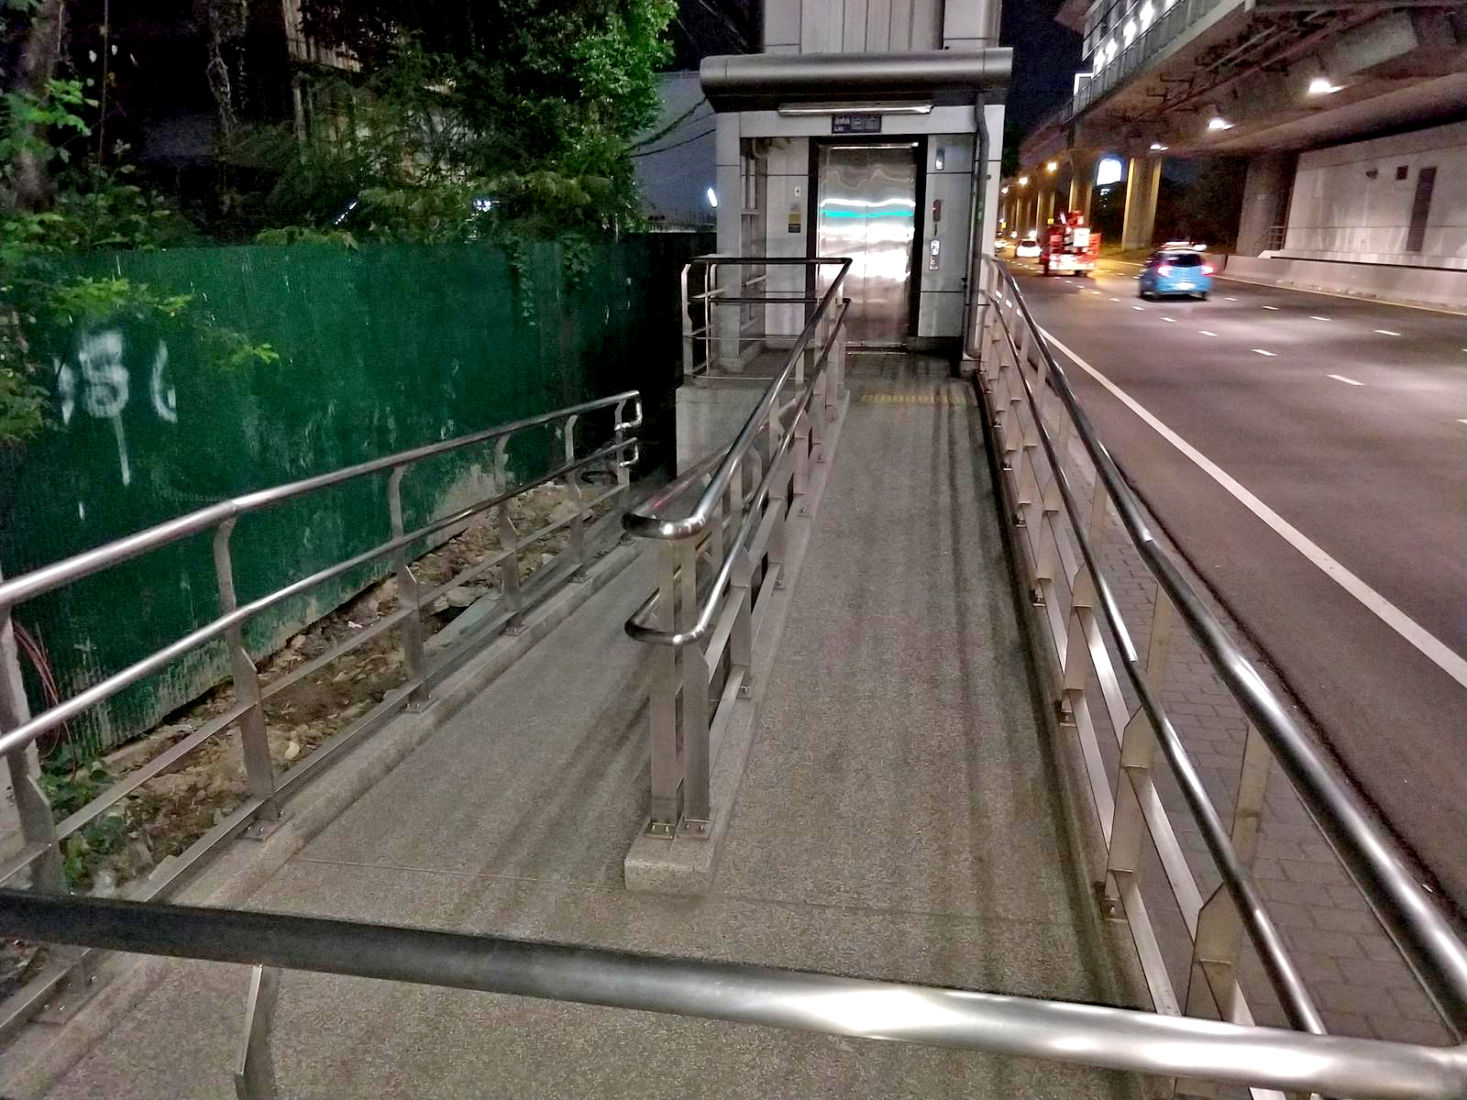 BMA adds pedestrian walkways and better disabled access | News by Thaiger